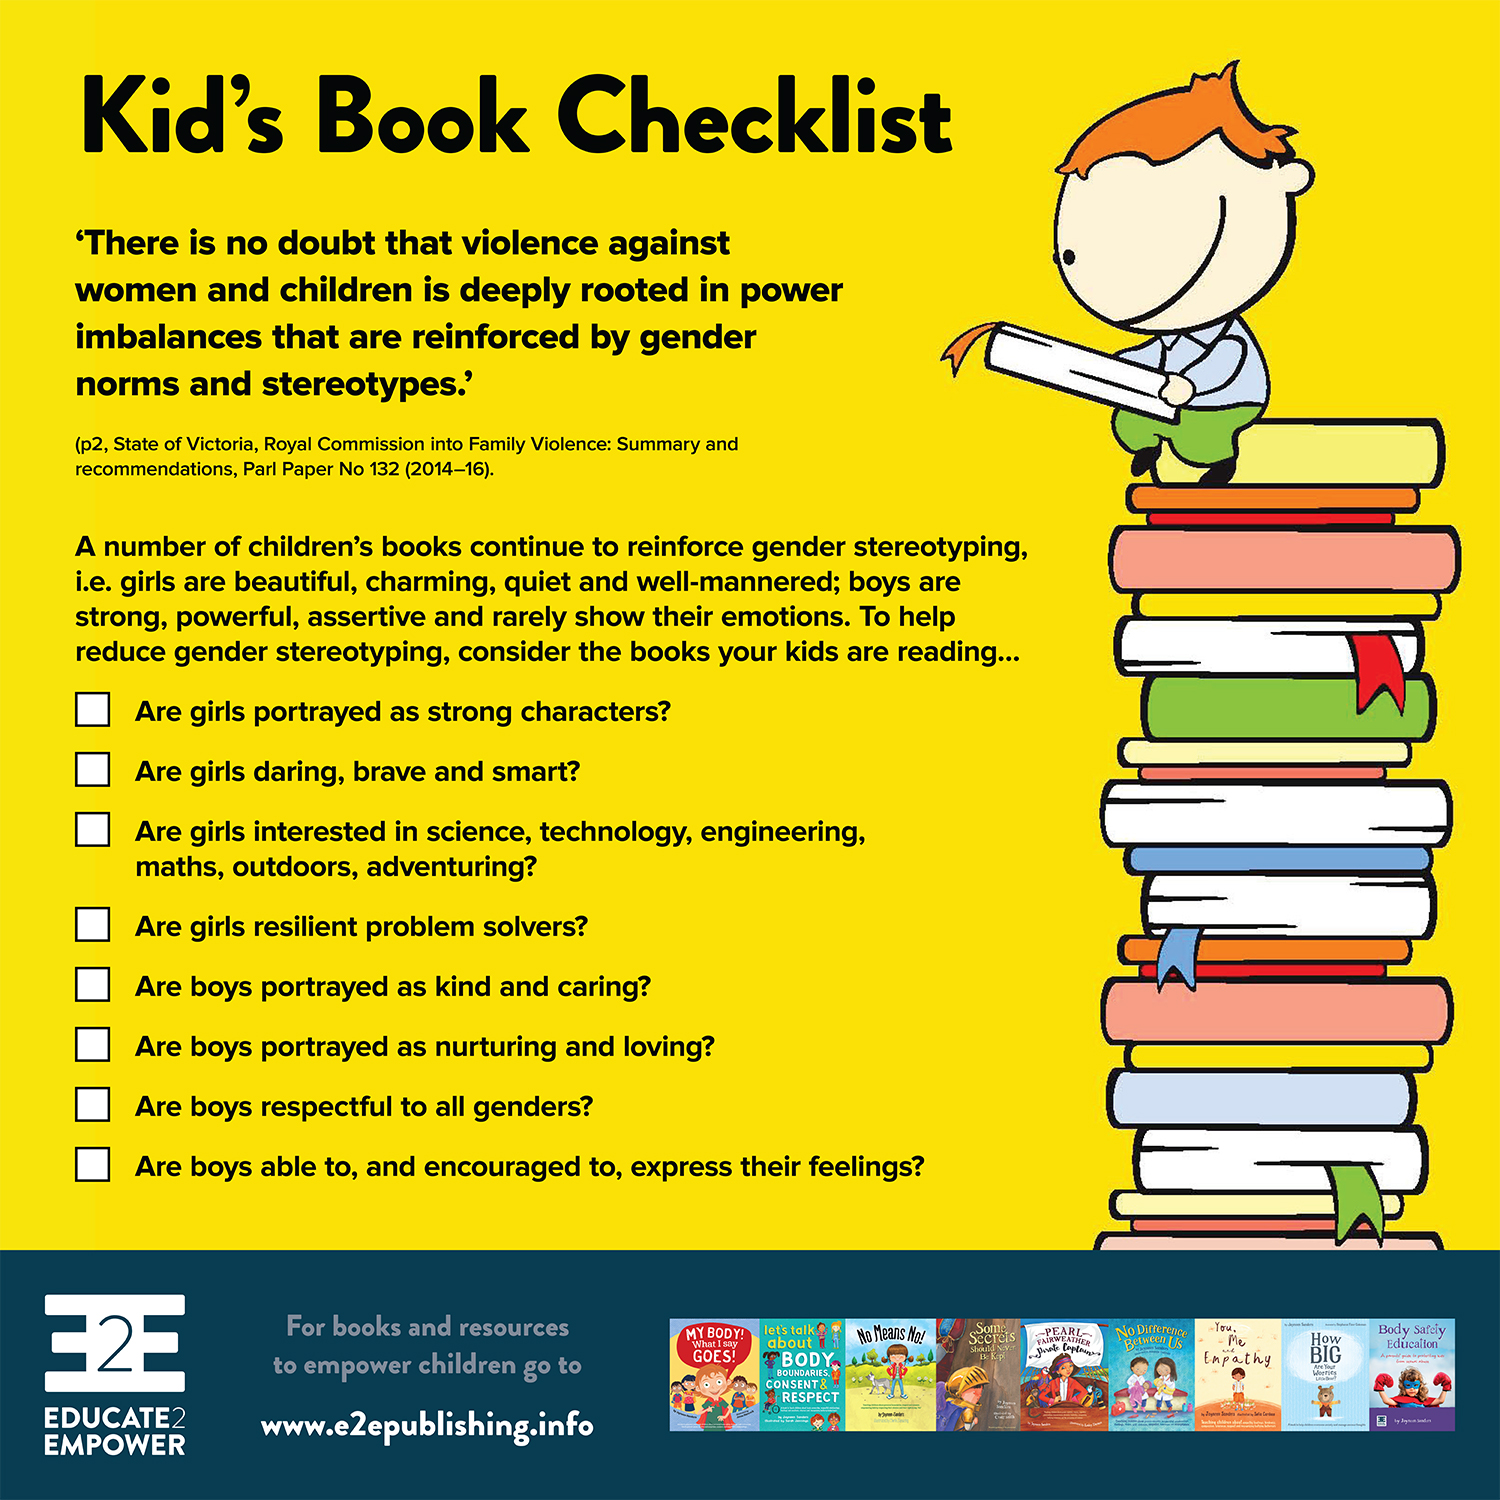 Kid's Book Checklist - To help promote equality between genders, through reading books that don't reinforce stereotyping of genders or gender-based roles!Would you like a copy?To download, right/control click on on the linkand select